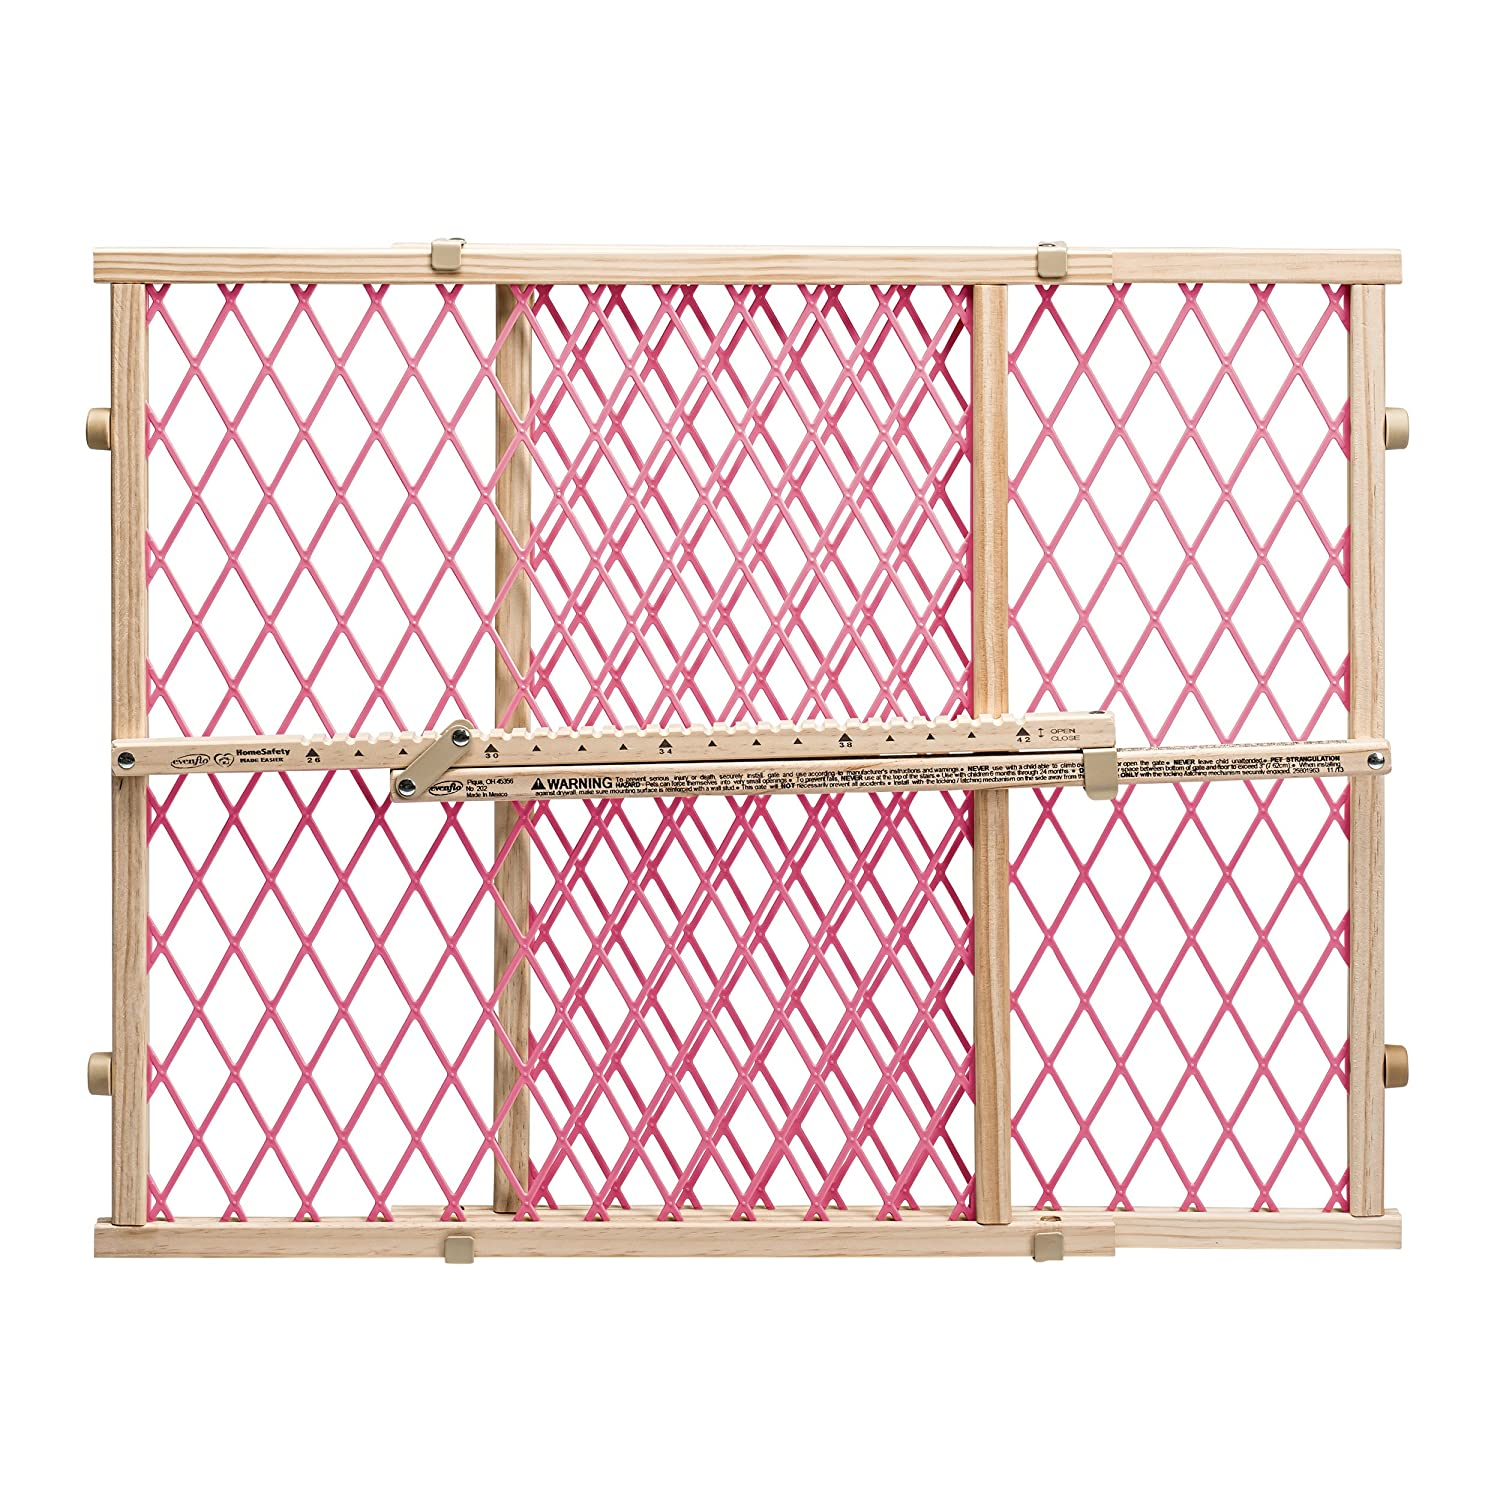 Evenflo Position and Lock Doorway Gate, Pink 2025915